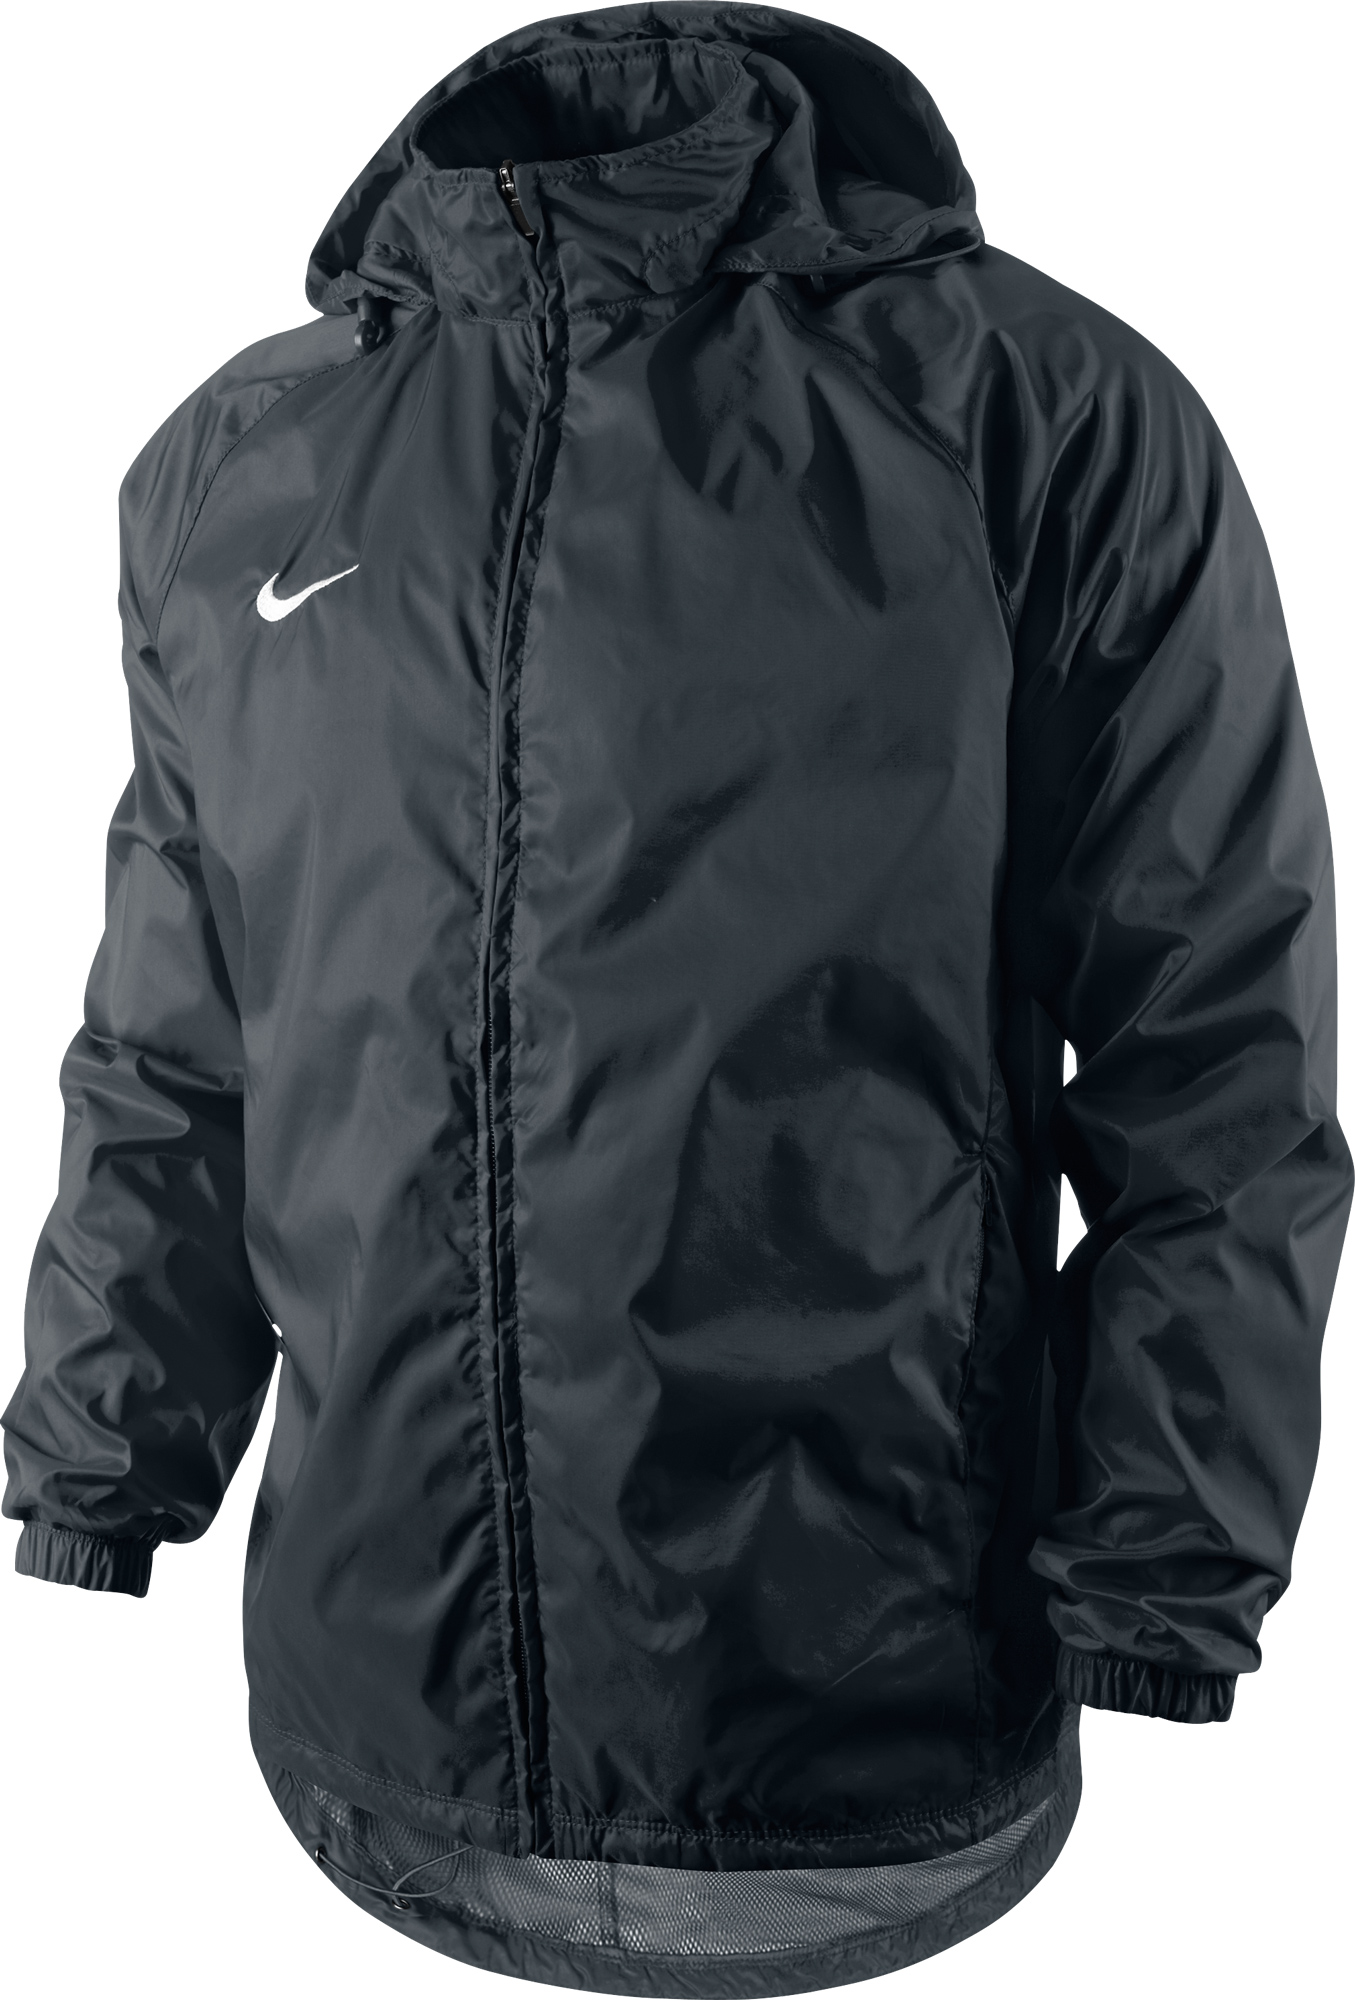 Nike - Team Sideline Rain Jacket 010 Black/ (White)